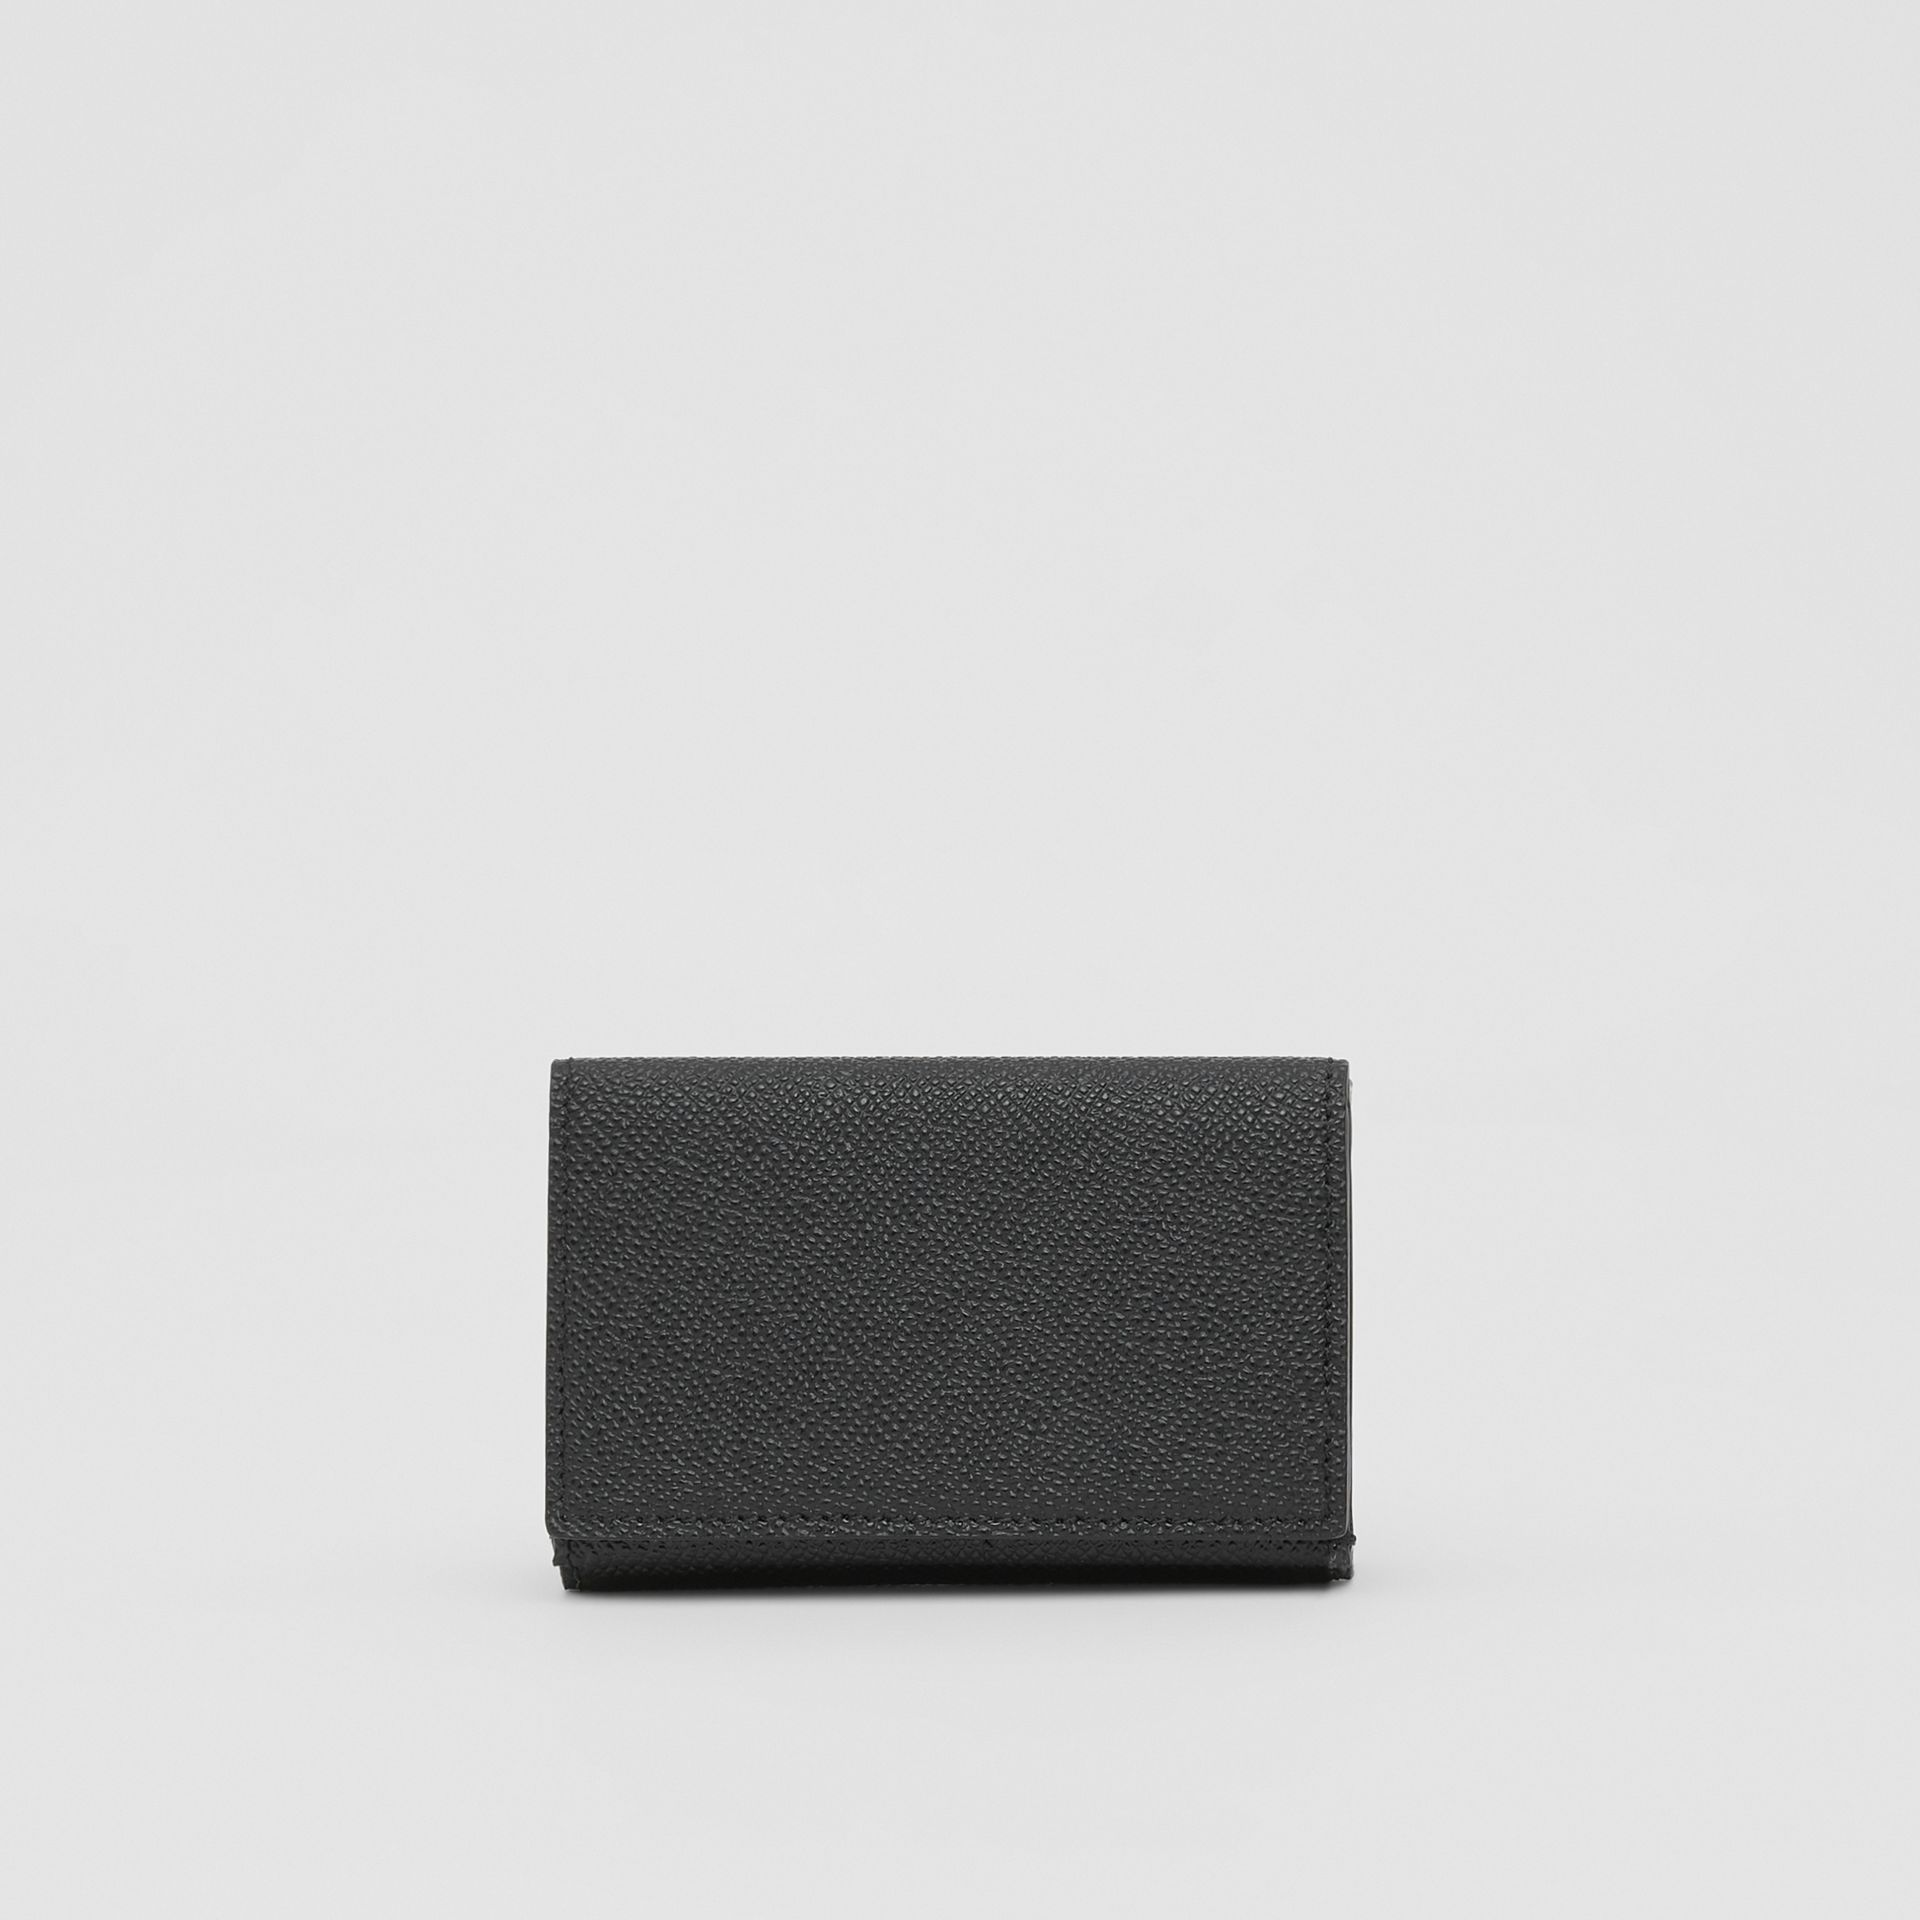 Small Grainy Leather Folding Wallet in Black - Men | Burberry - gallery image 5